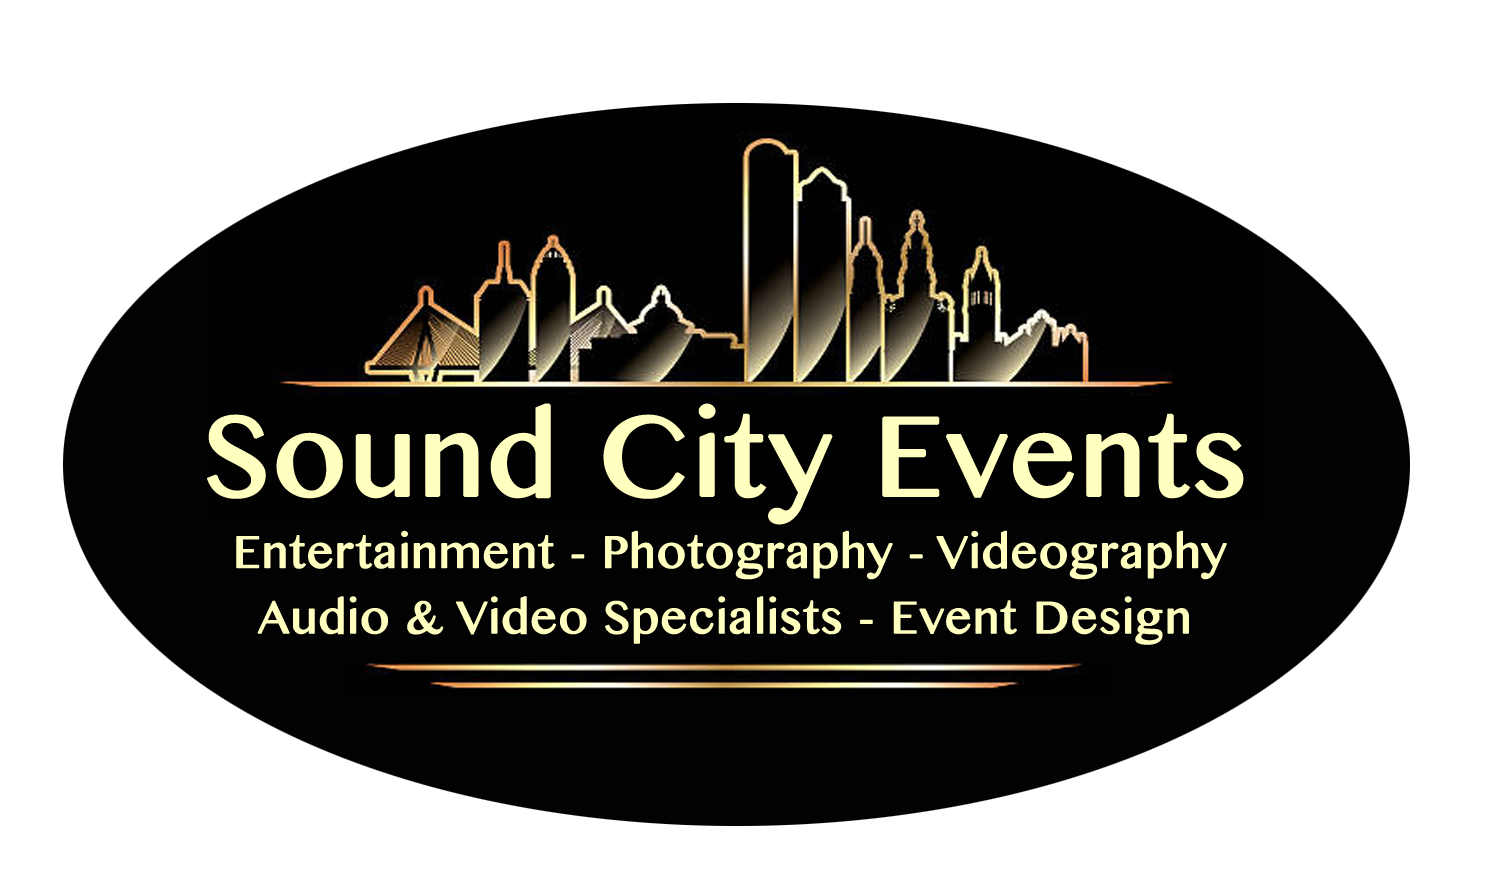 Sound City Events